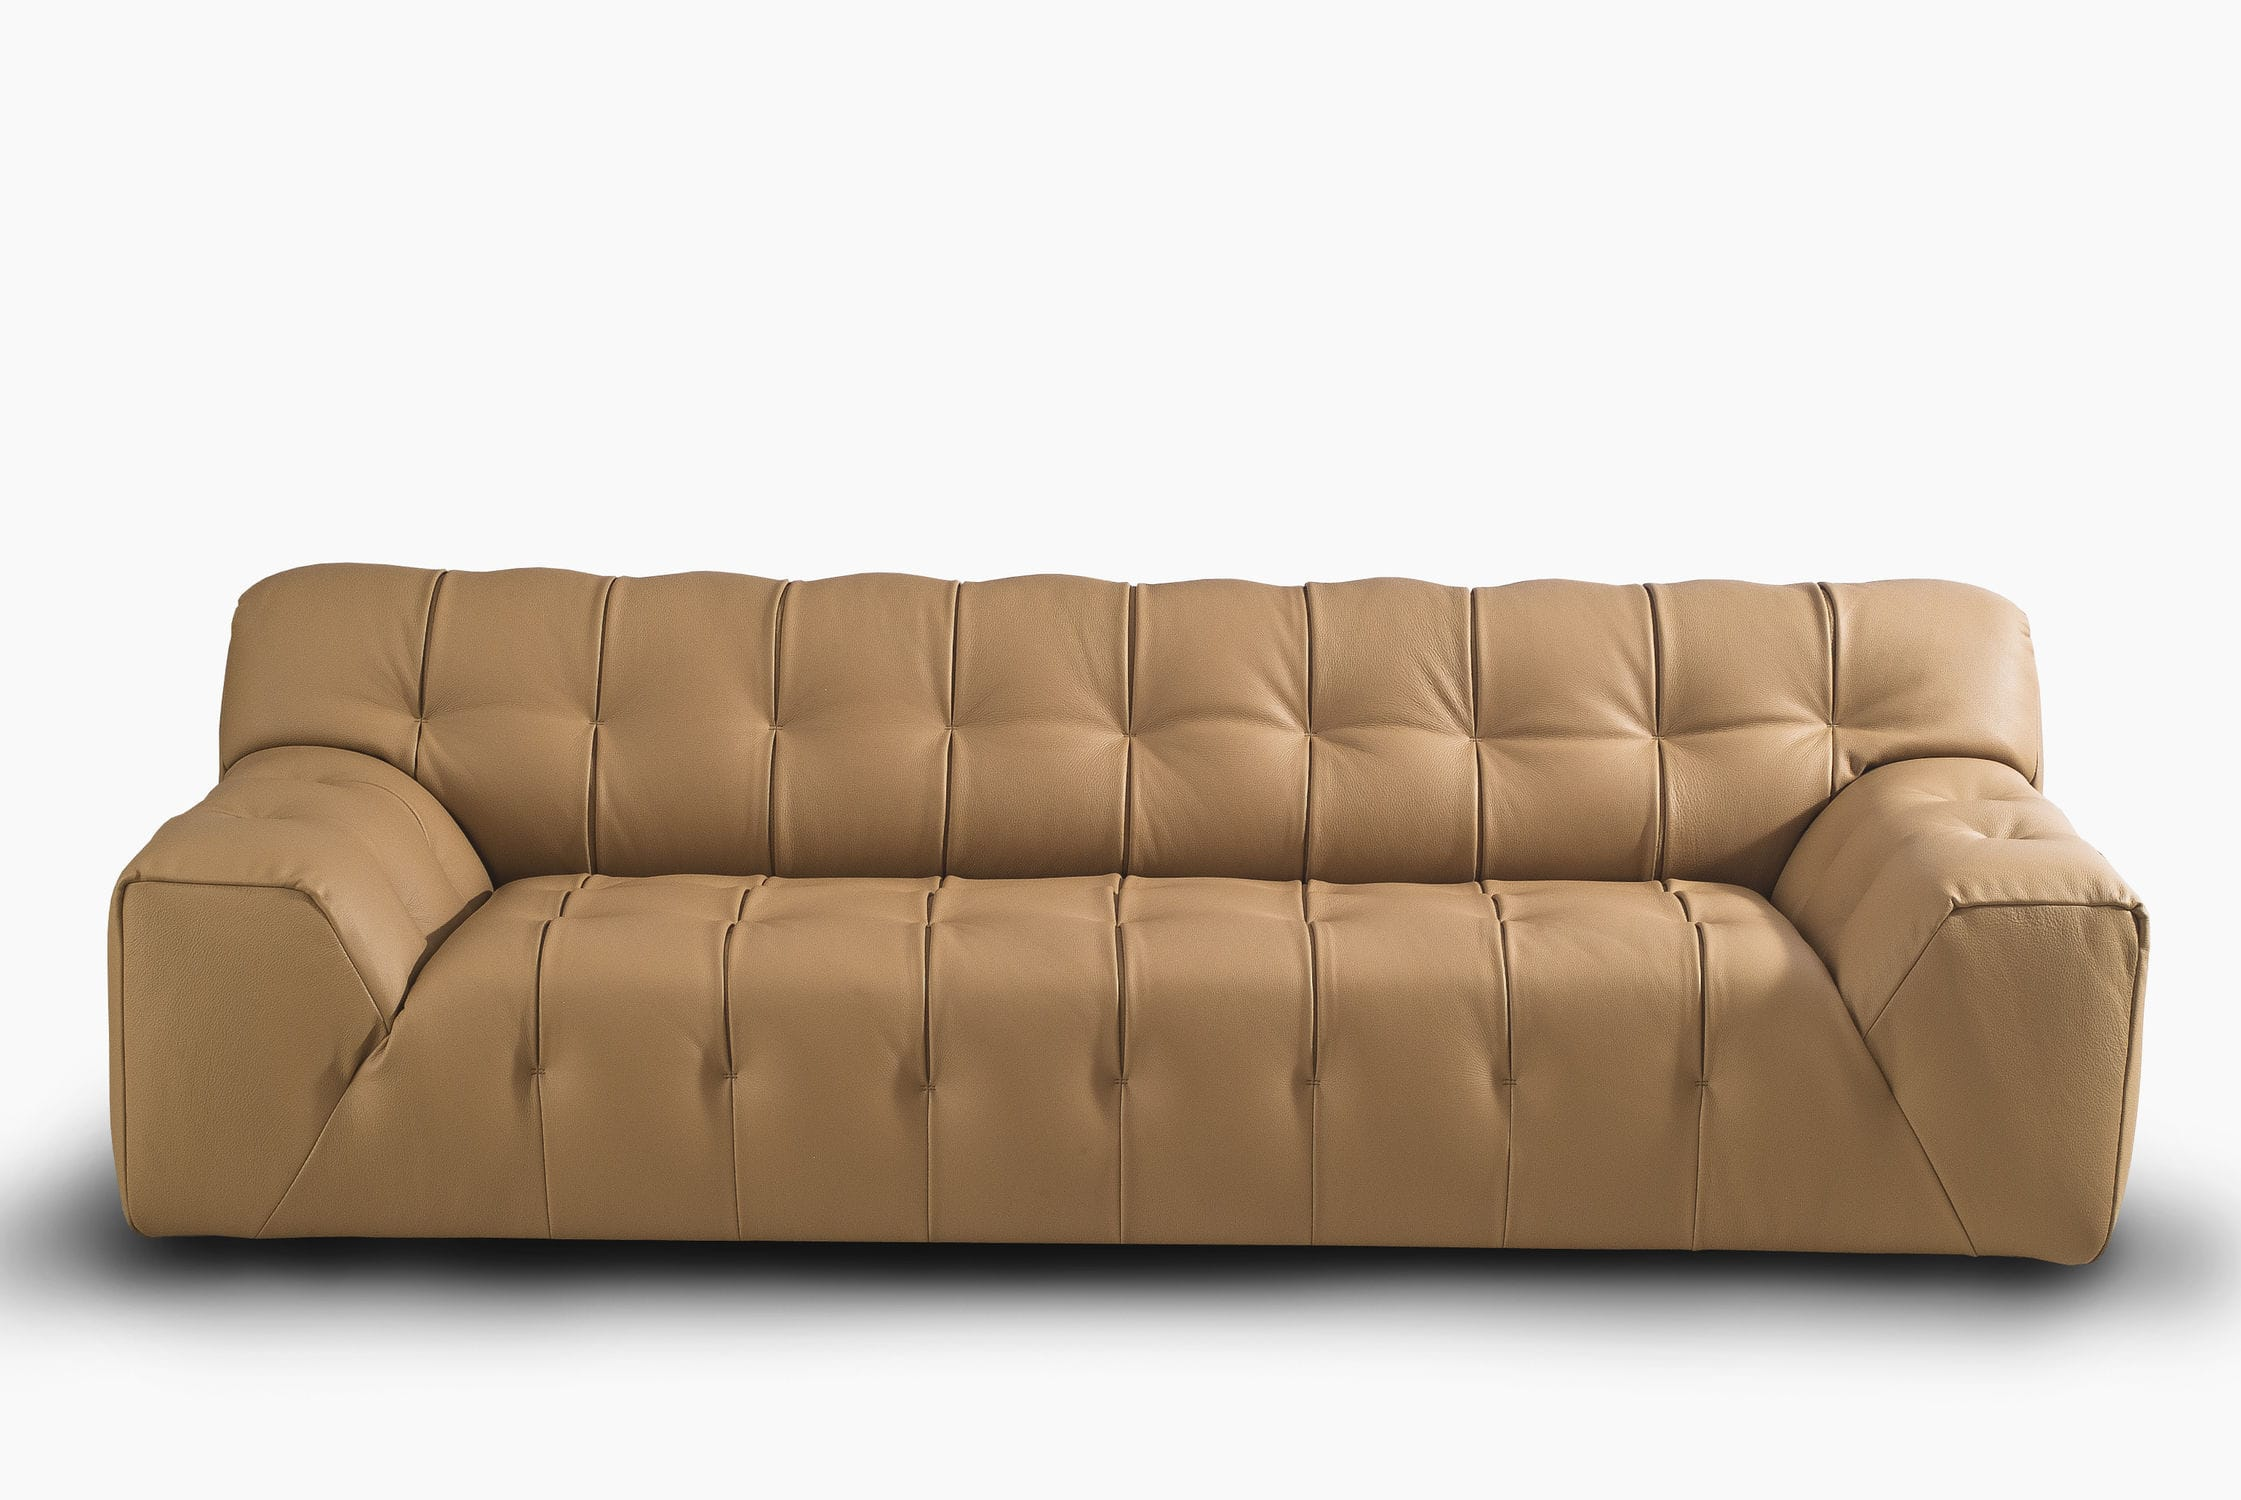 - Corner Sofa - ALISON - Nieri - Contemporary / Fabric / Leather